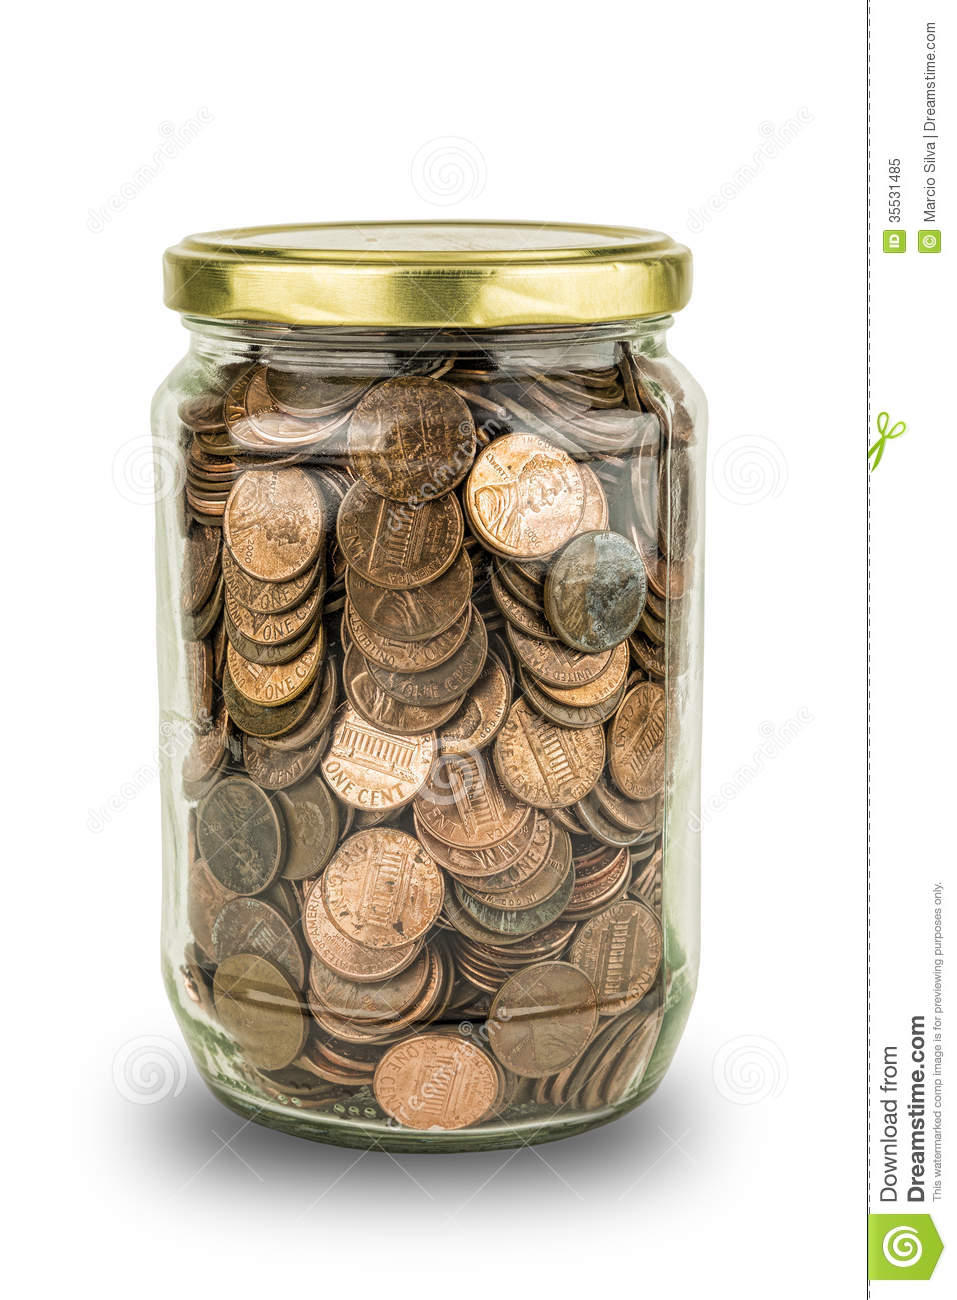 coins in a jar royalty free stock photo image 35531485